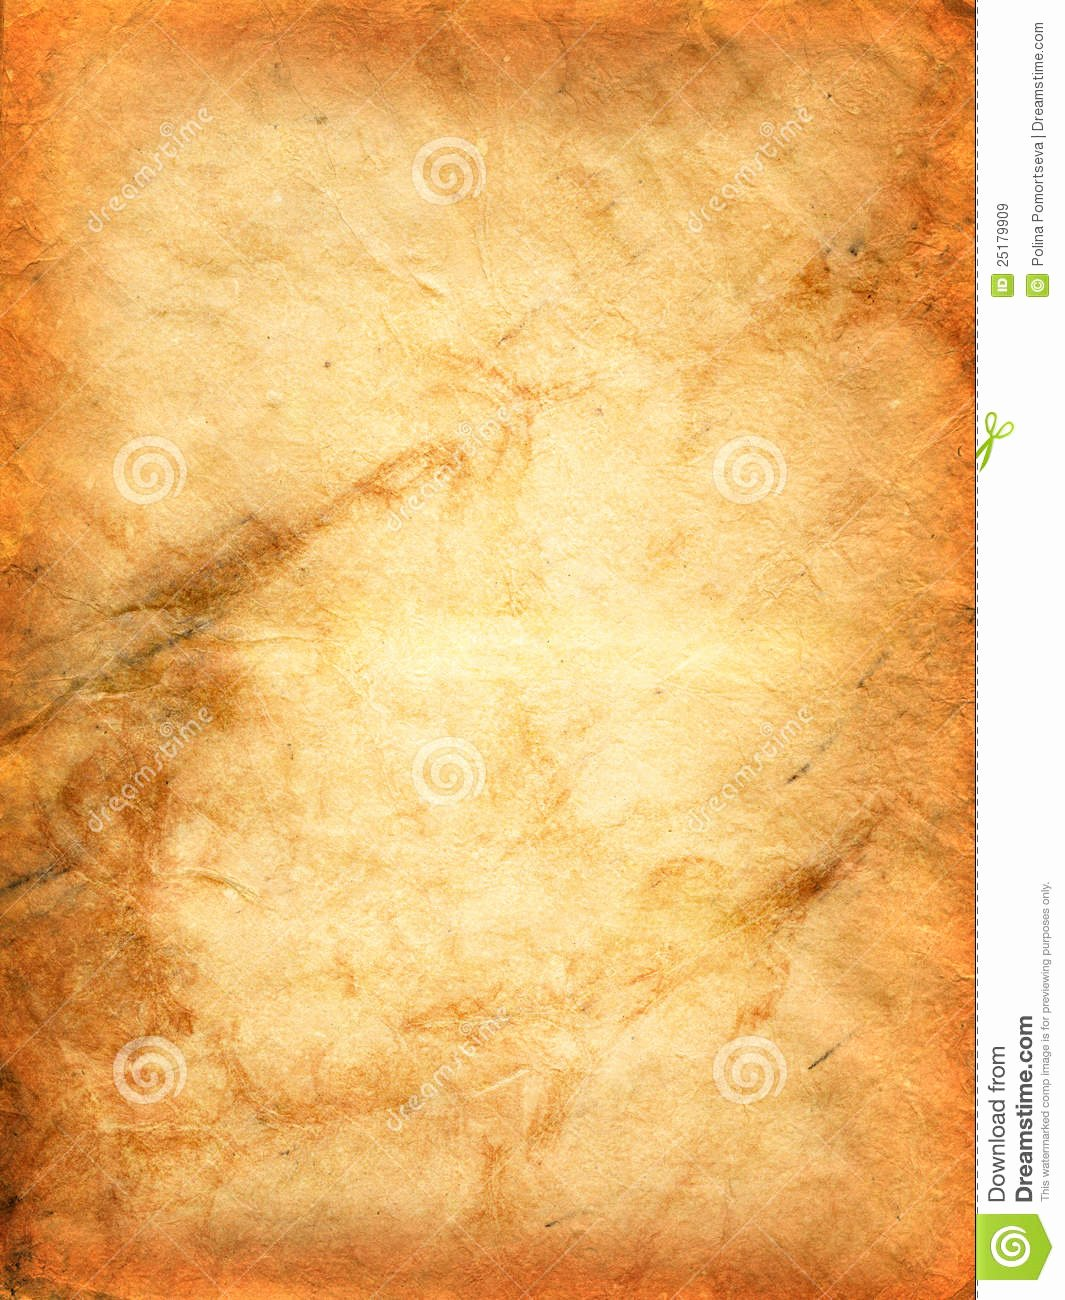 Old Paper Texture Free Elegant Old Paper Texture Royalty Free Stock Image